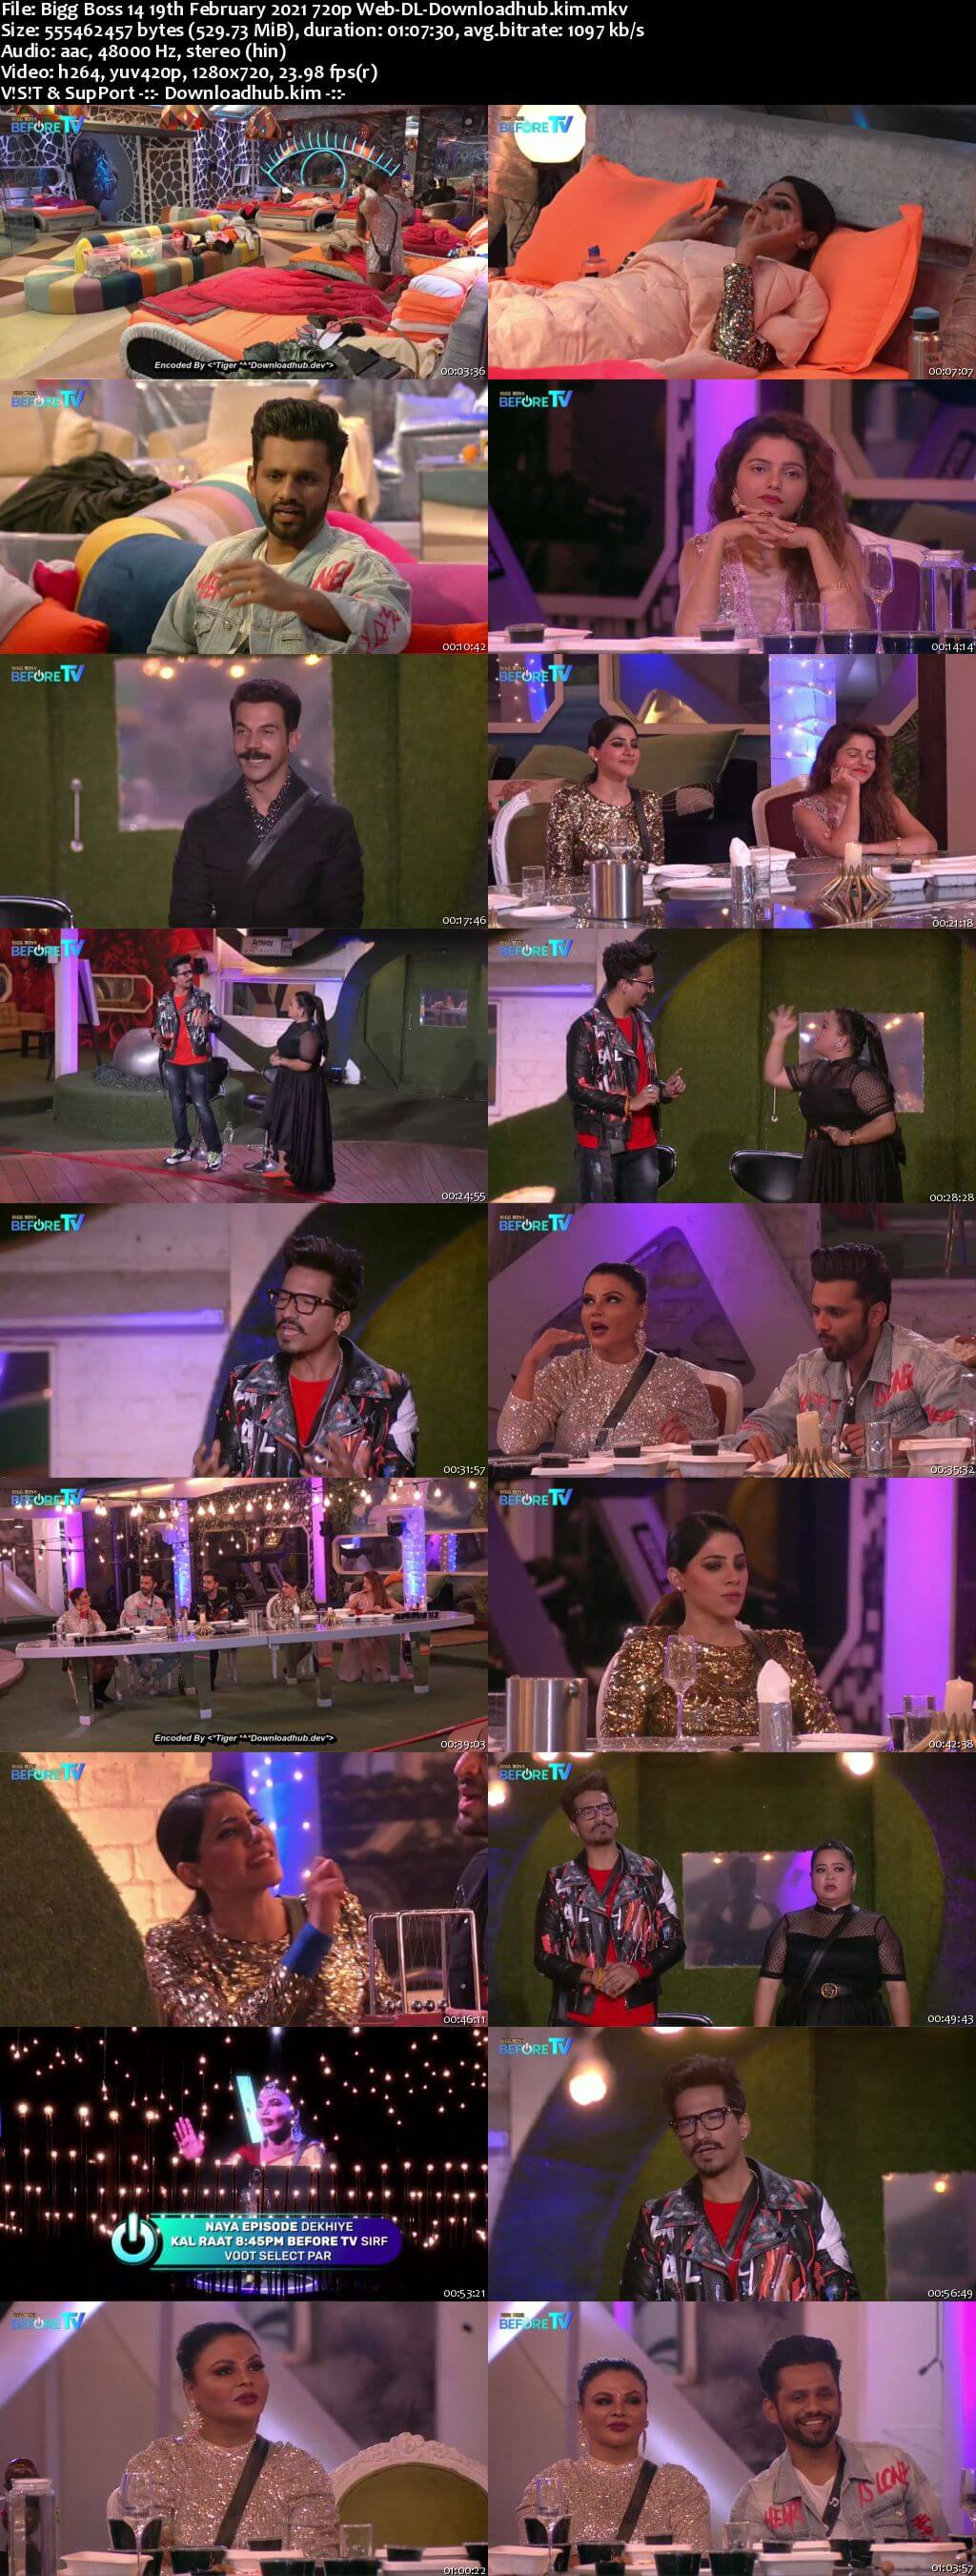 Bigg Boss 14 19th February 2021 Episode 139 720p 480p Web-DL